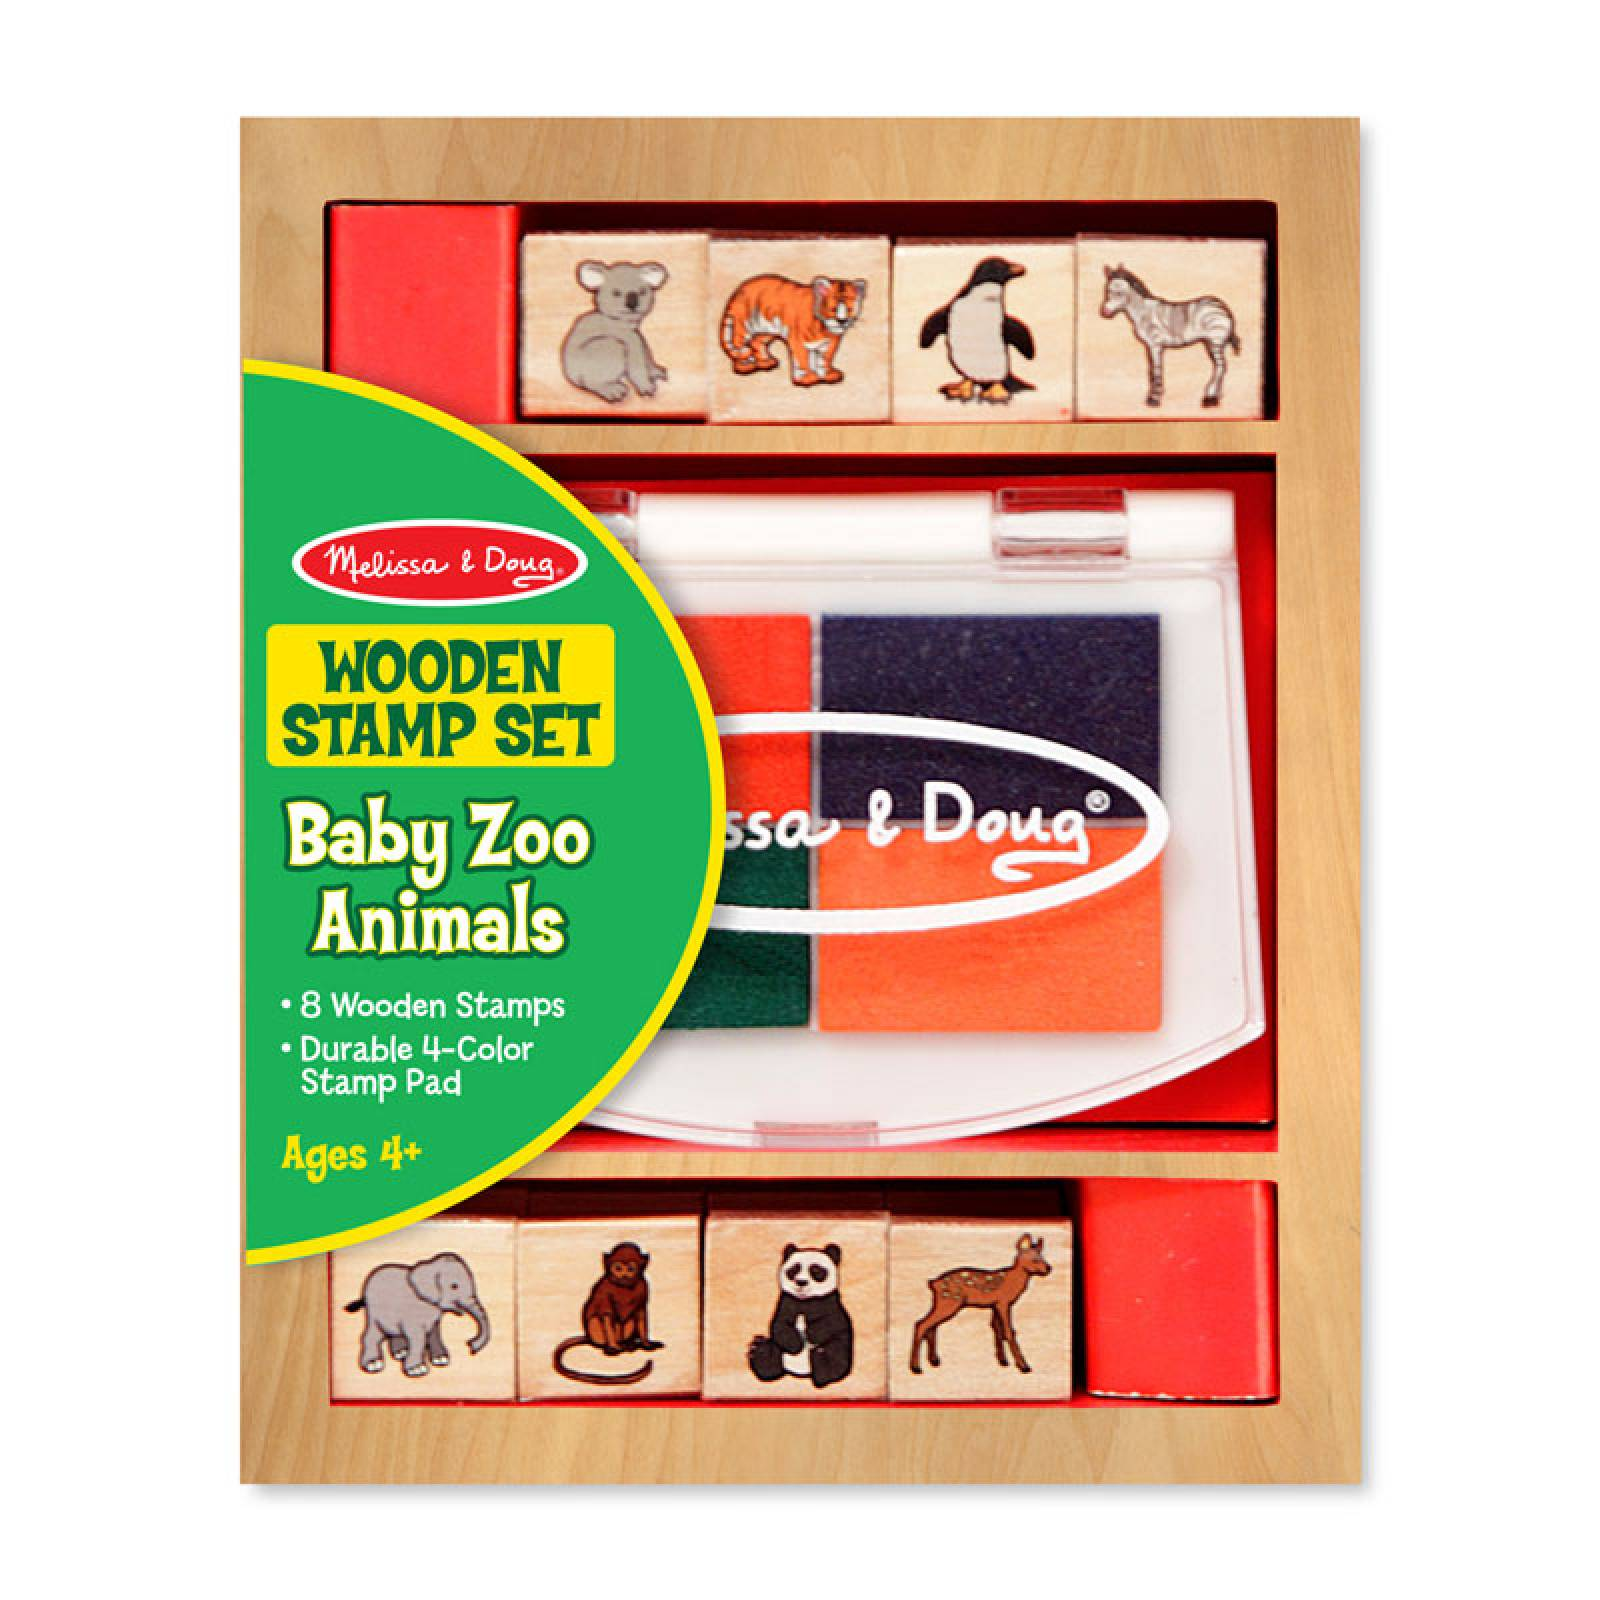 Wooden Stamp Set - Baby Zoo Animals 4+ thumbnails